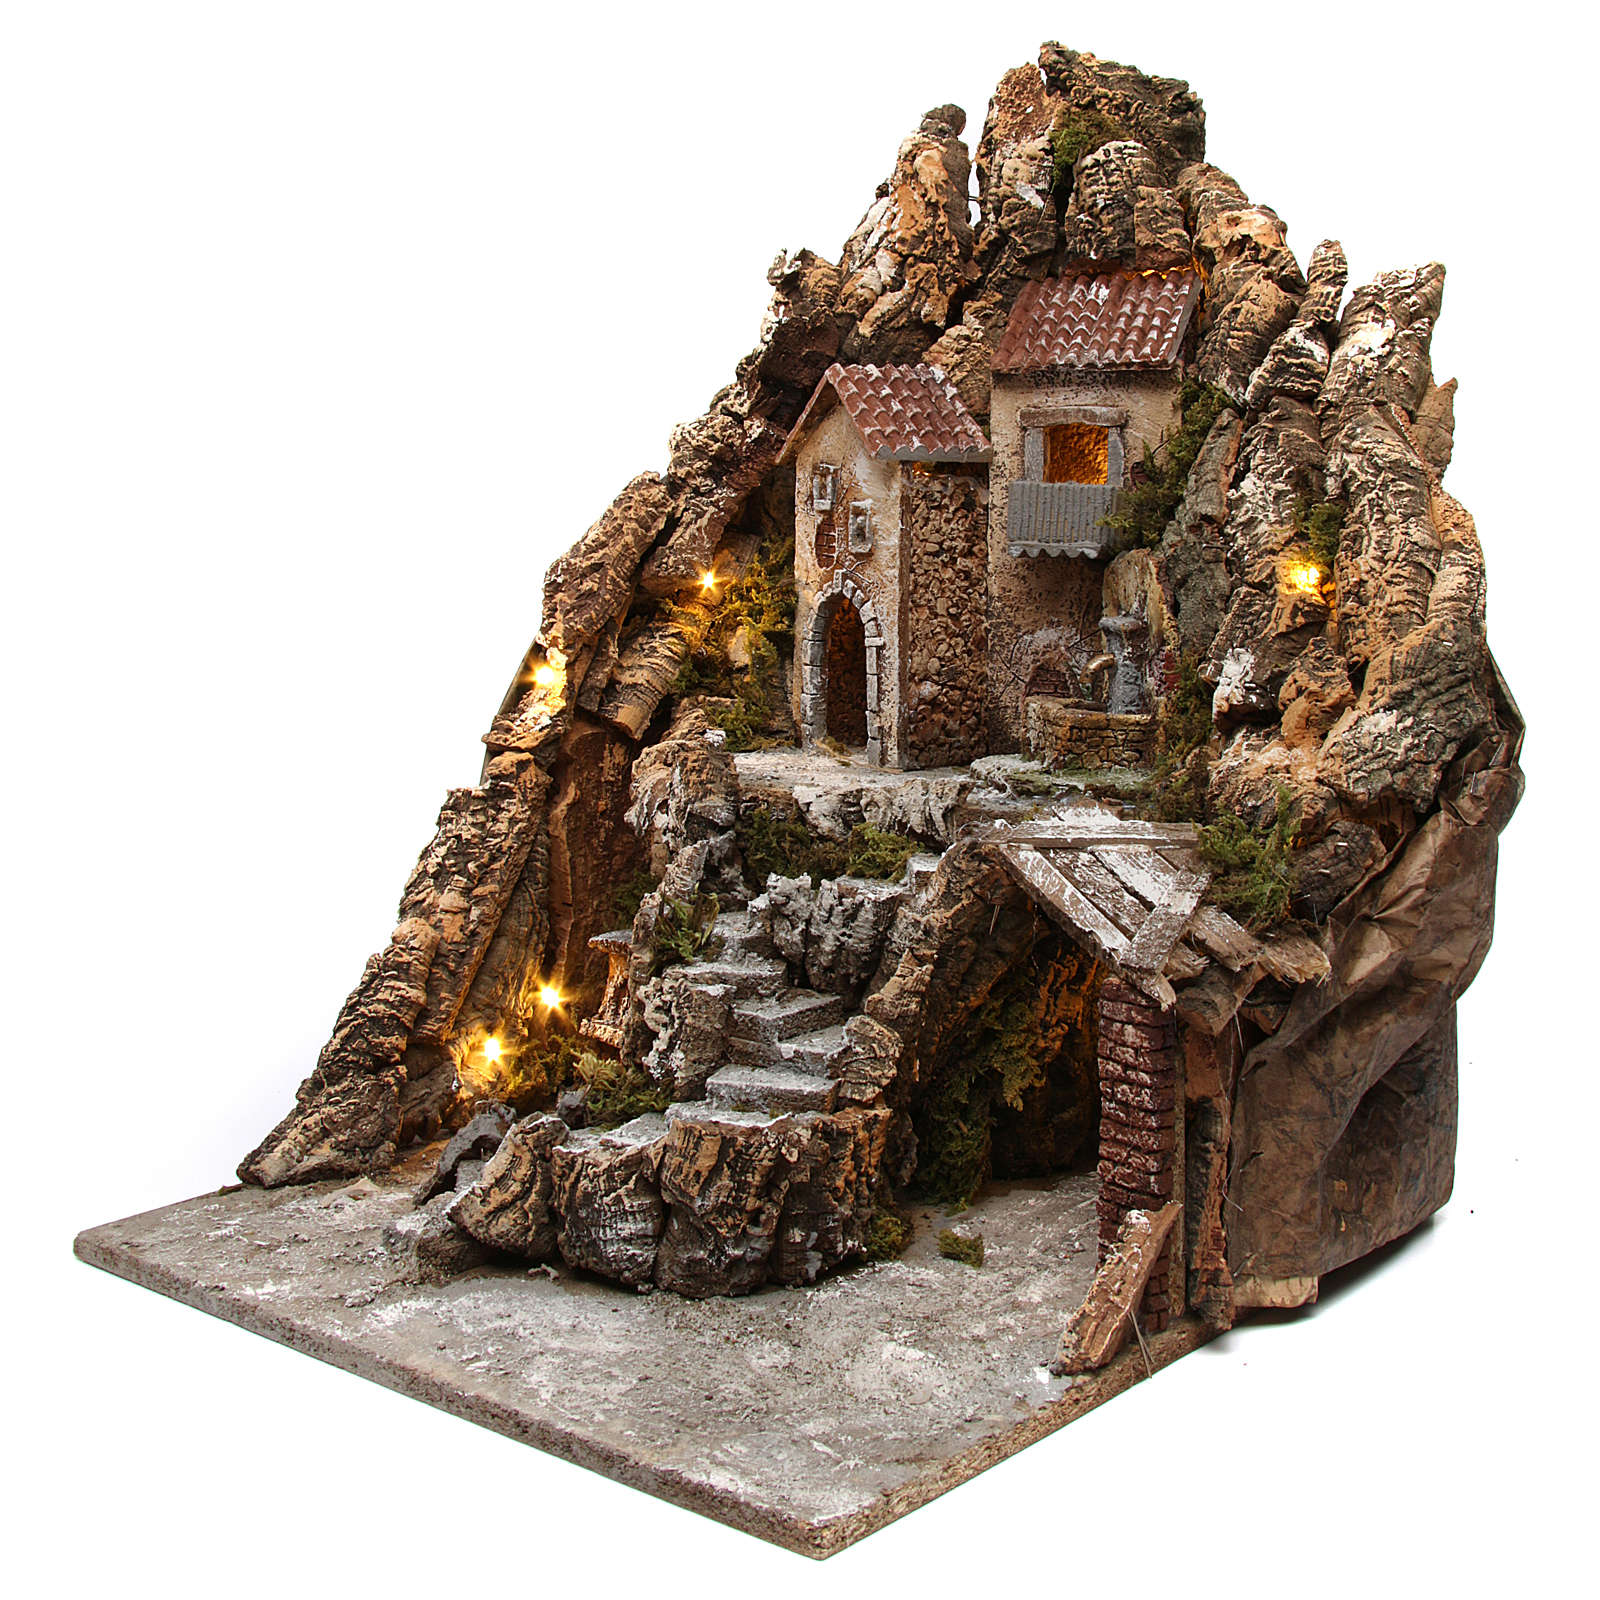 Neapolitan nativity scene setting with lights, fountain and oven 50X40X50 cm 4